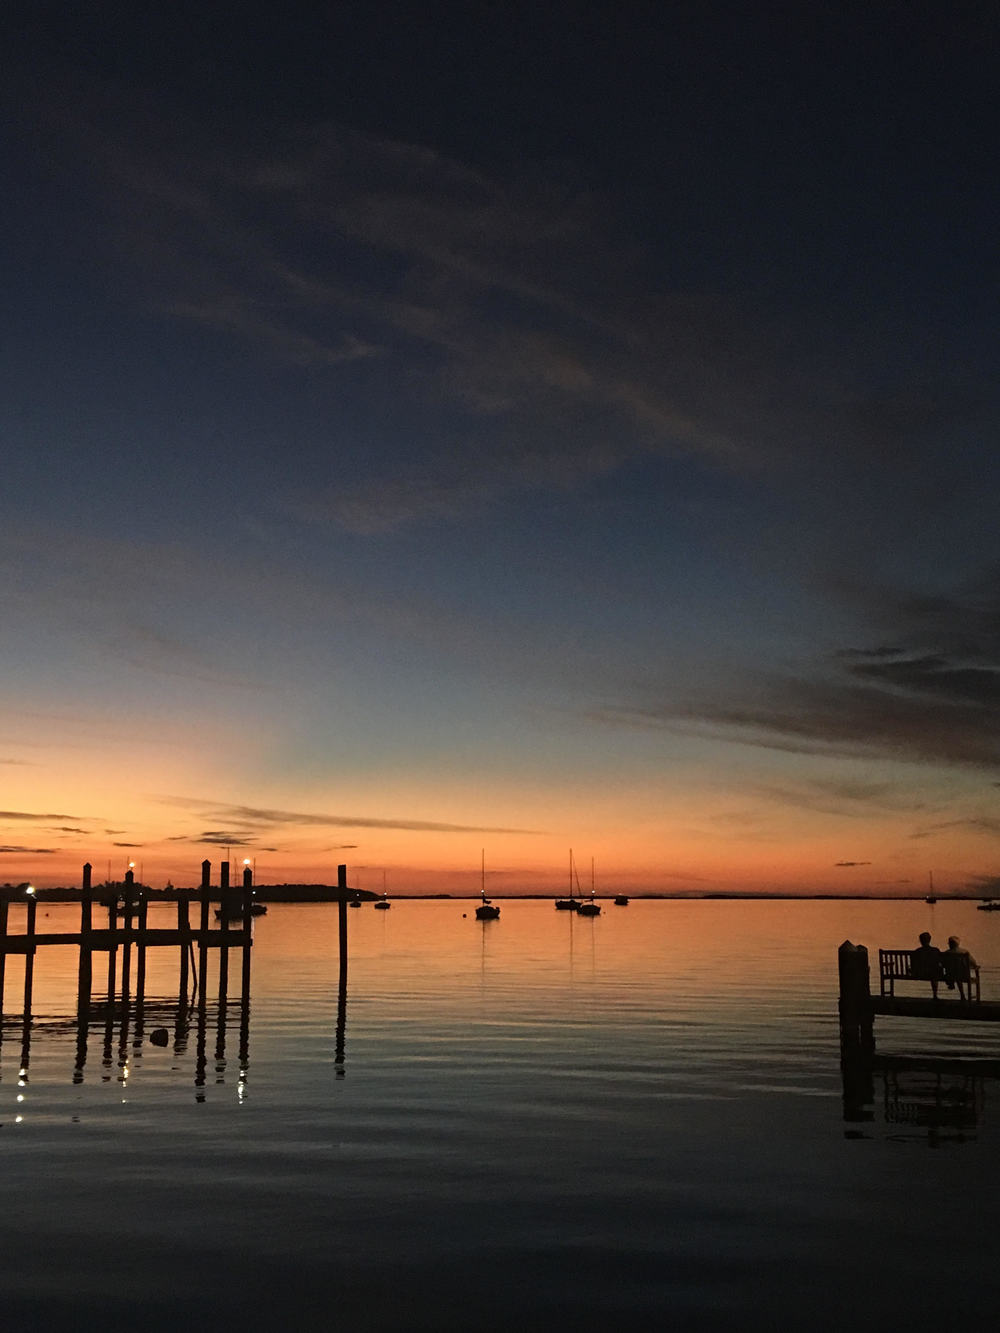 Sunset on the Bay side of Key Largo en route to Biscayne National Park. Photo credit: Stefanie Payne